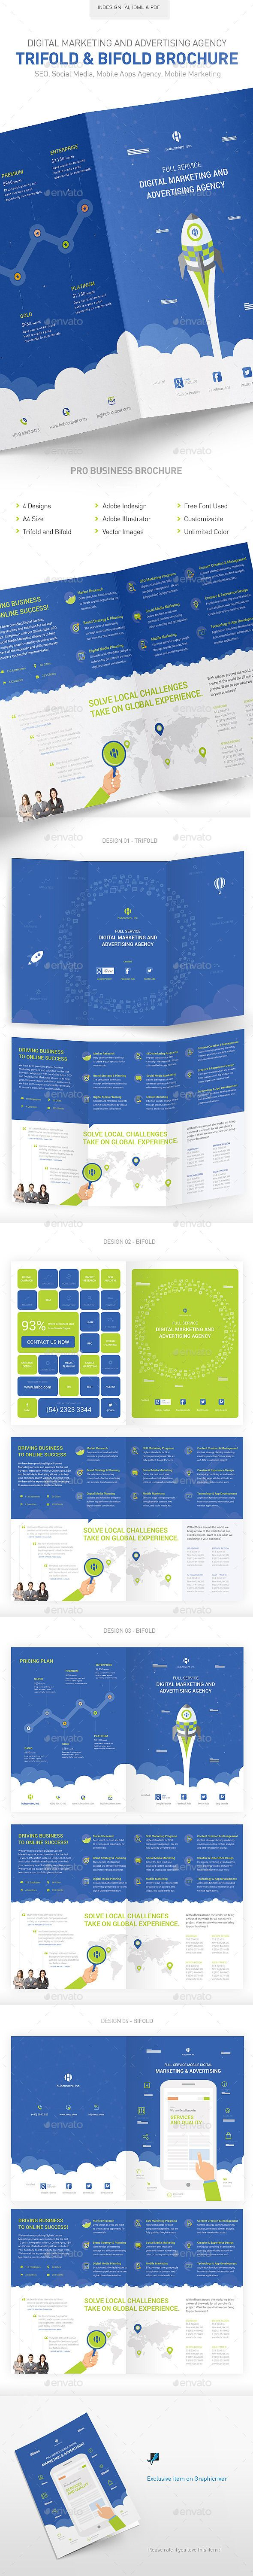 Digital Marketing Advertising Agency Brochure Print Template InDesign INDD Vector EPS AI